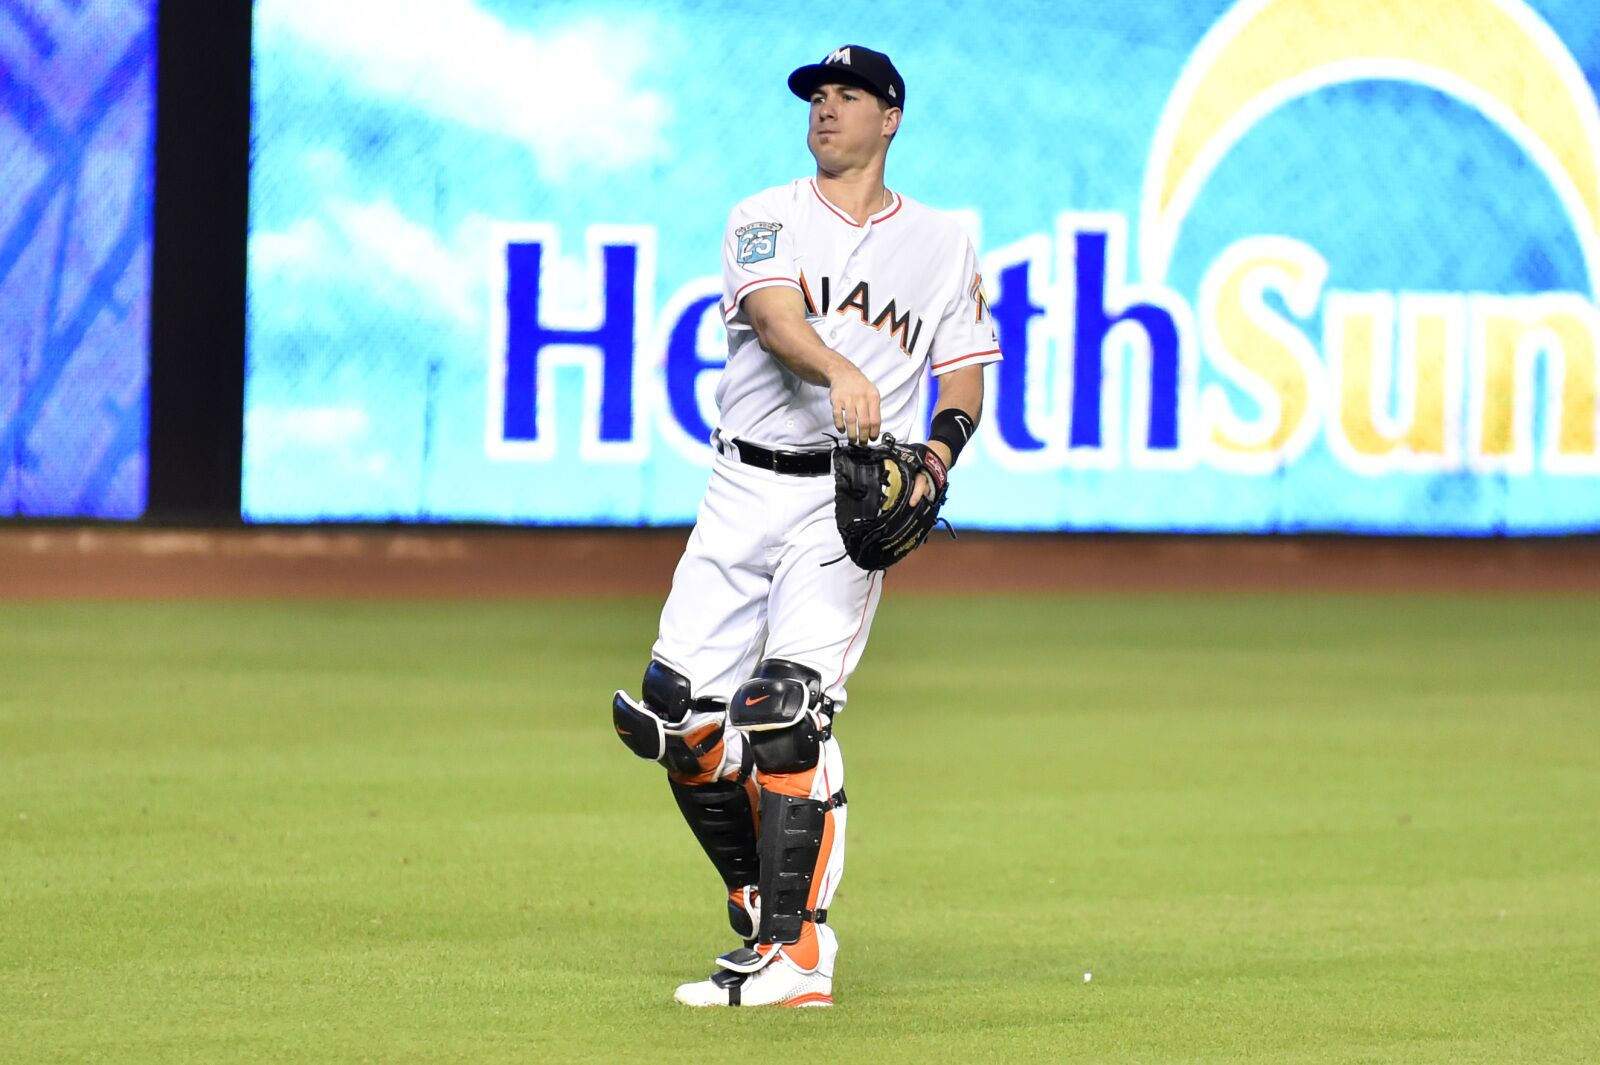 Washington Nationals: Don't give up hope on J.T. Realmuto dream yet